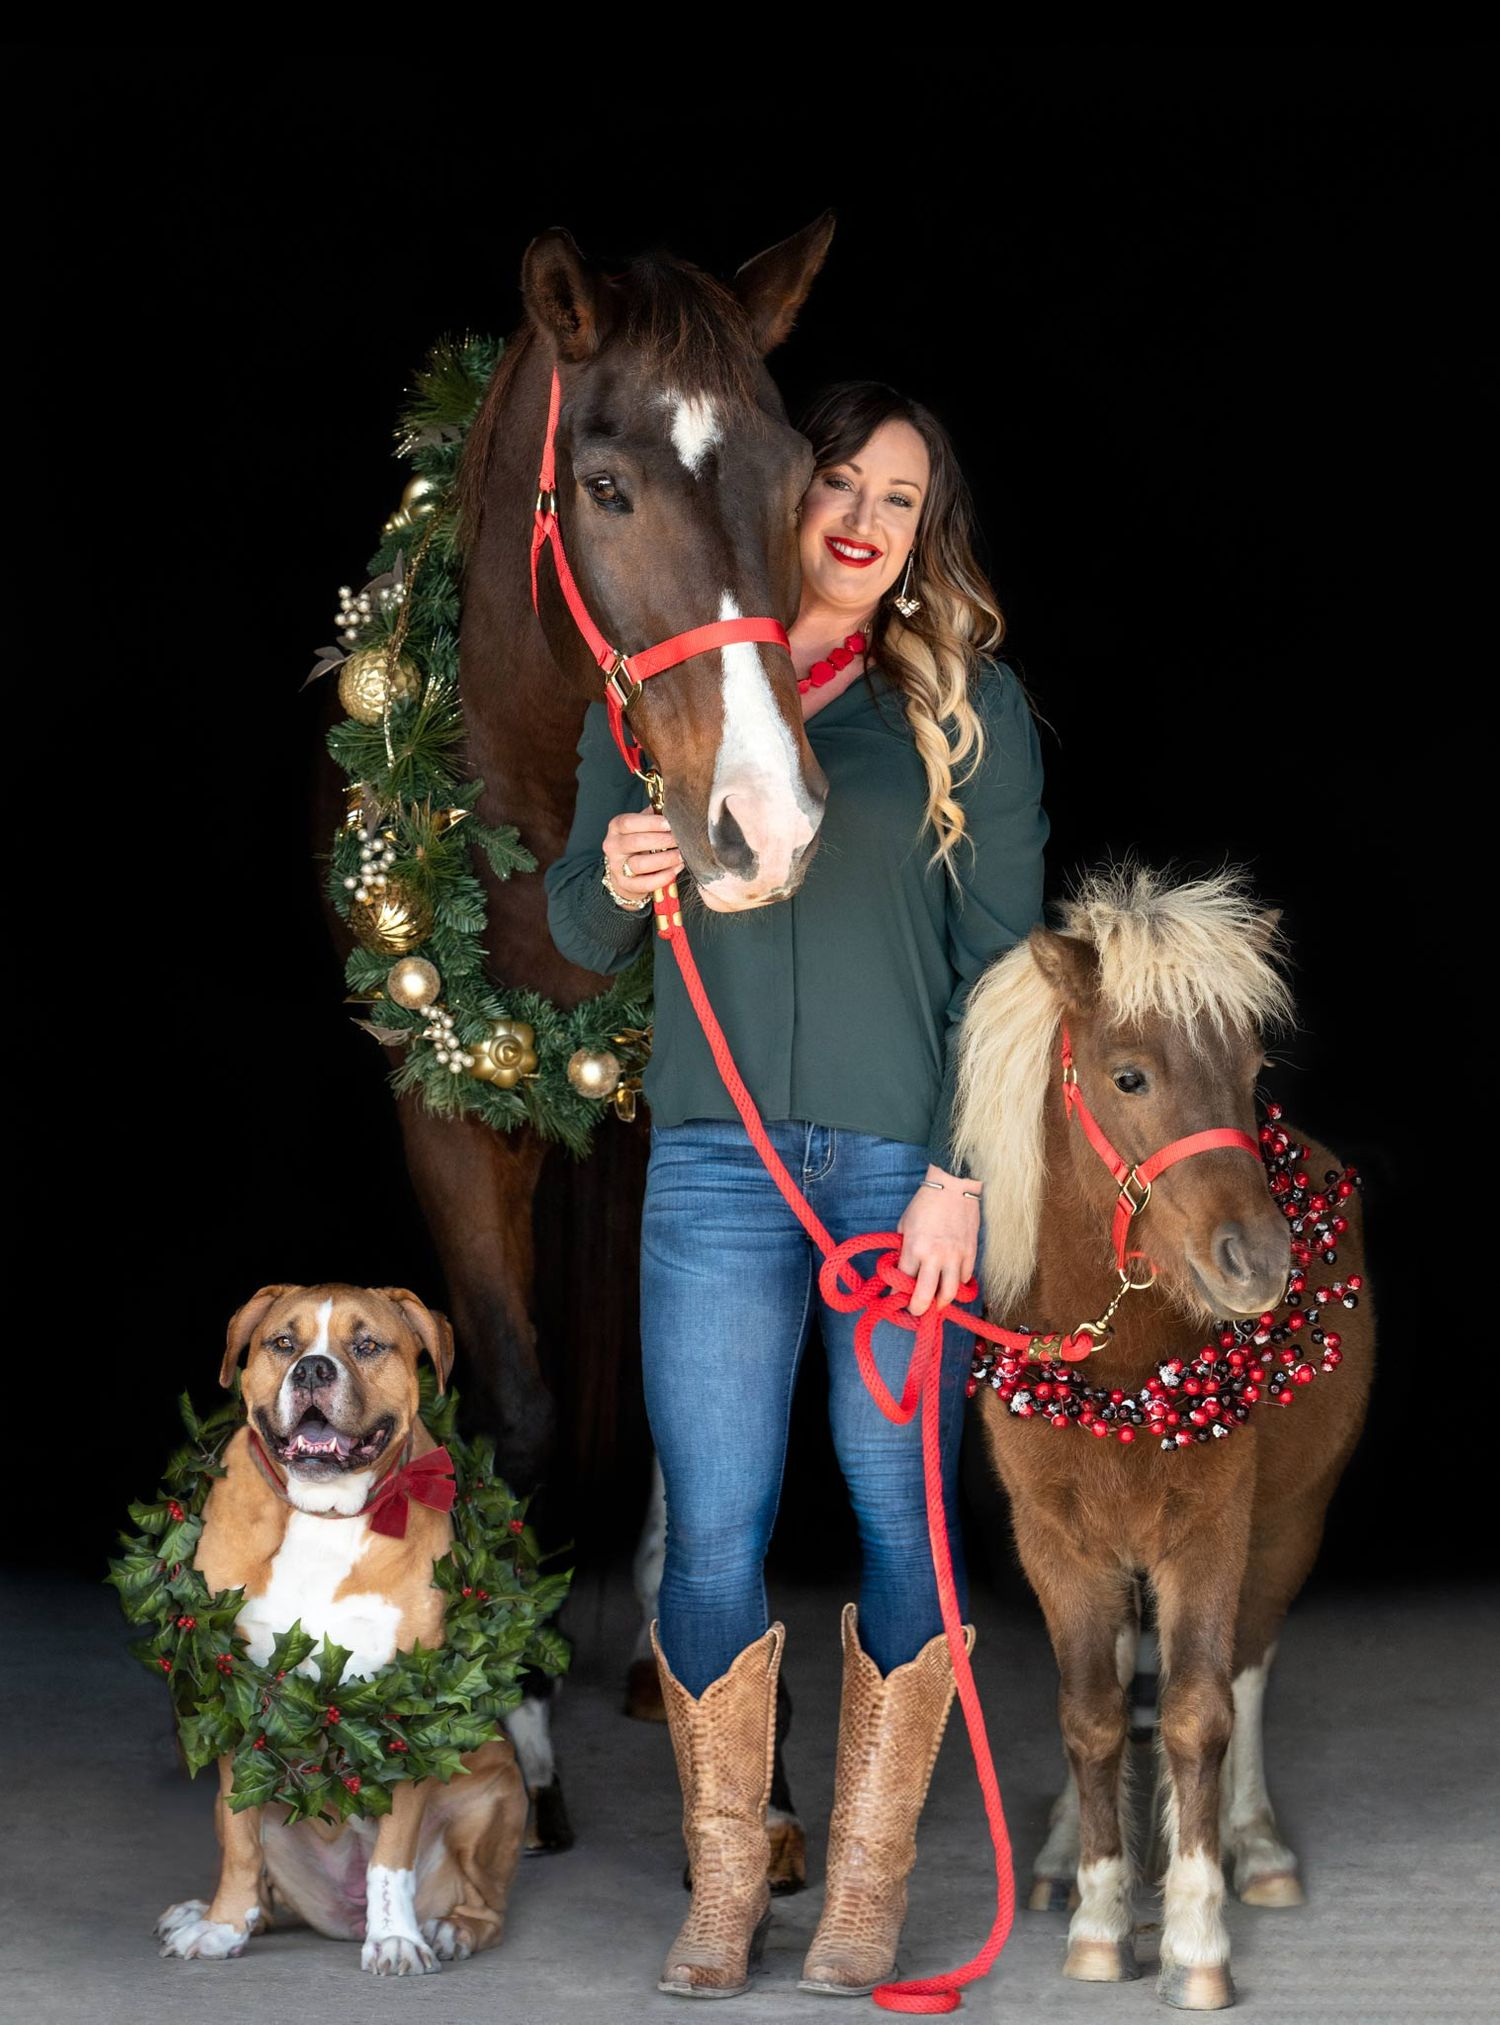 Woman posting with horse and pony and dog